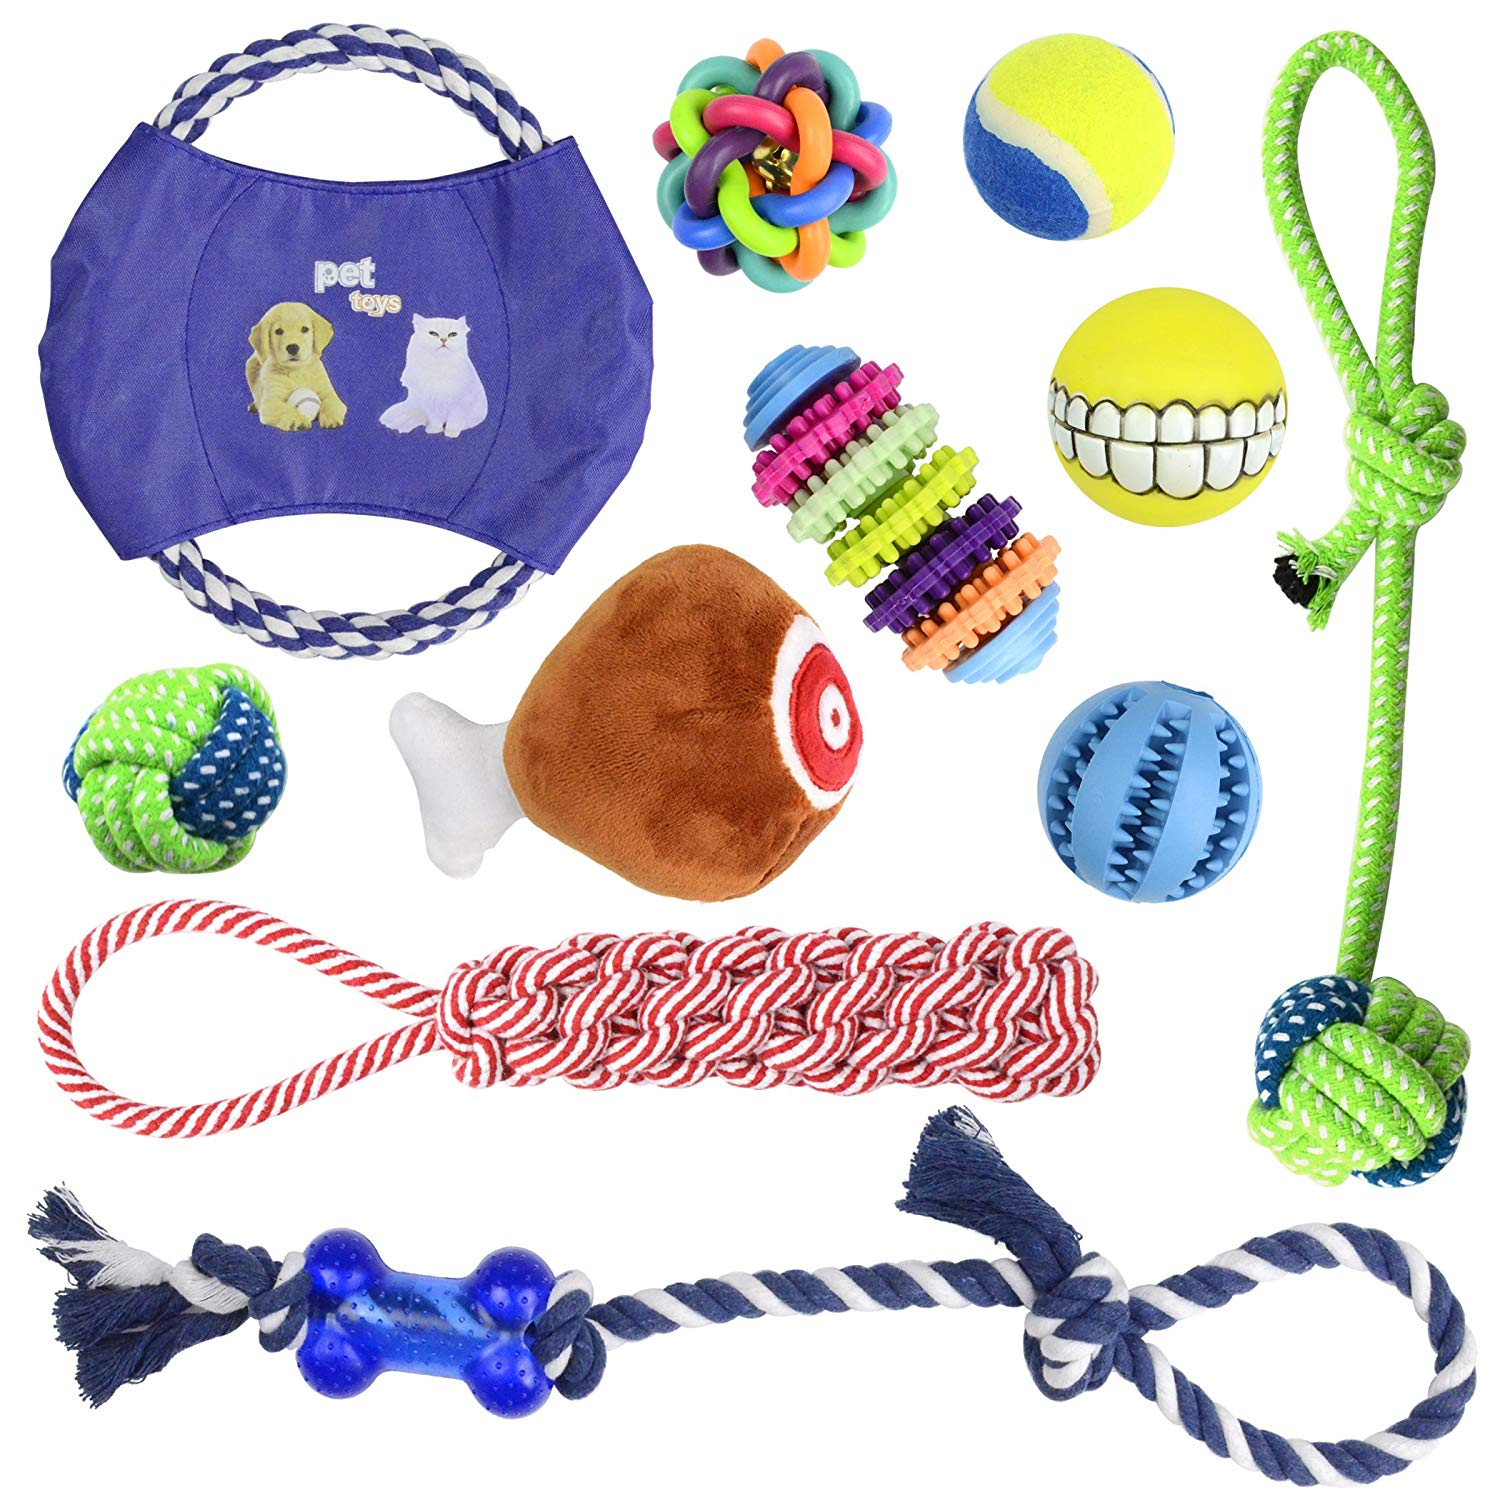 Whoobee Dog Chew Toys Cotton Rope Chew Toys Squeaky Plush Toys Puppy Teething Toys for Small Medium Large Dog,Durable and Washable Dog Dental Chew Toys